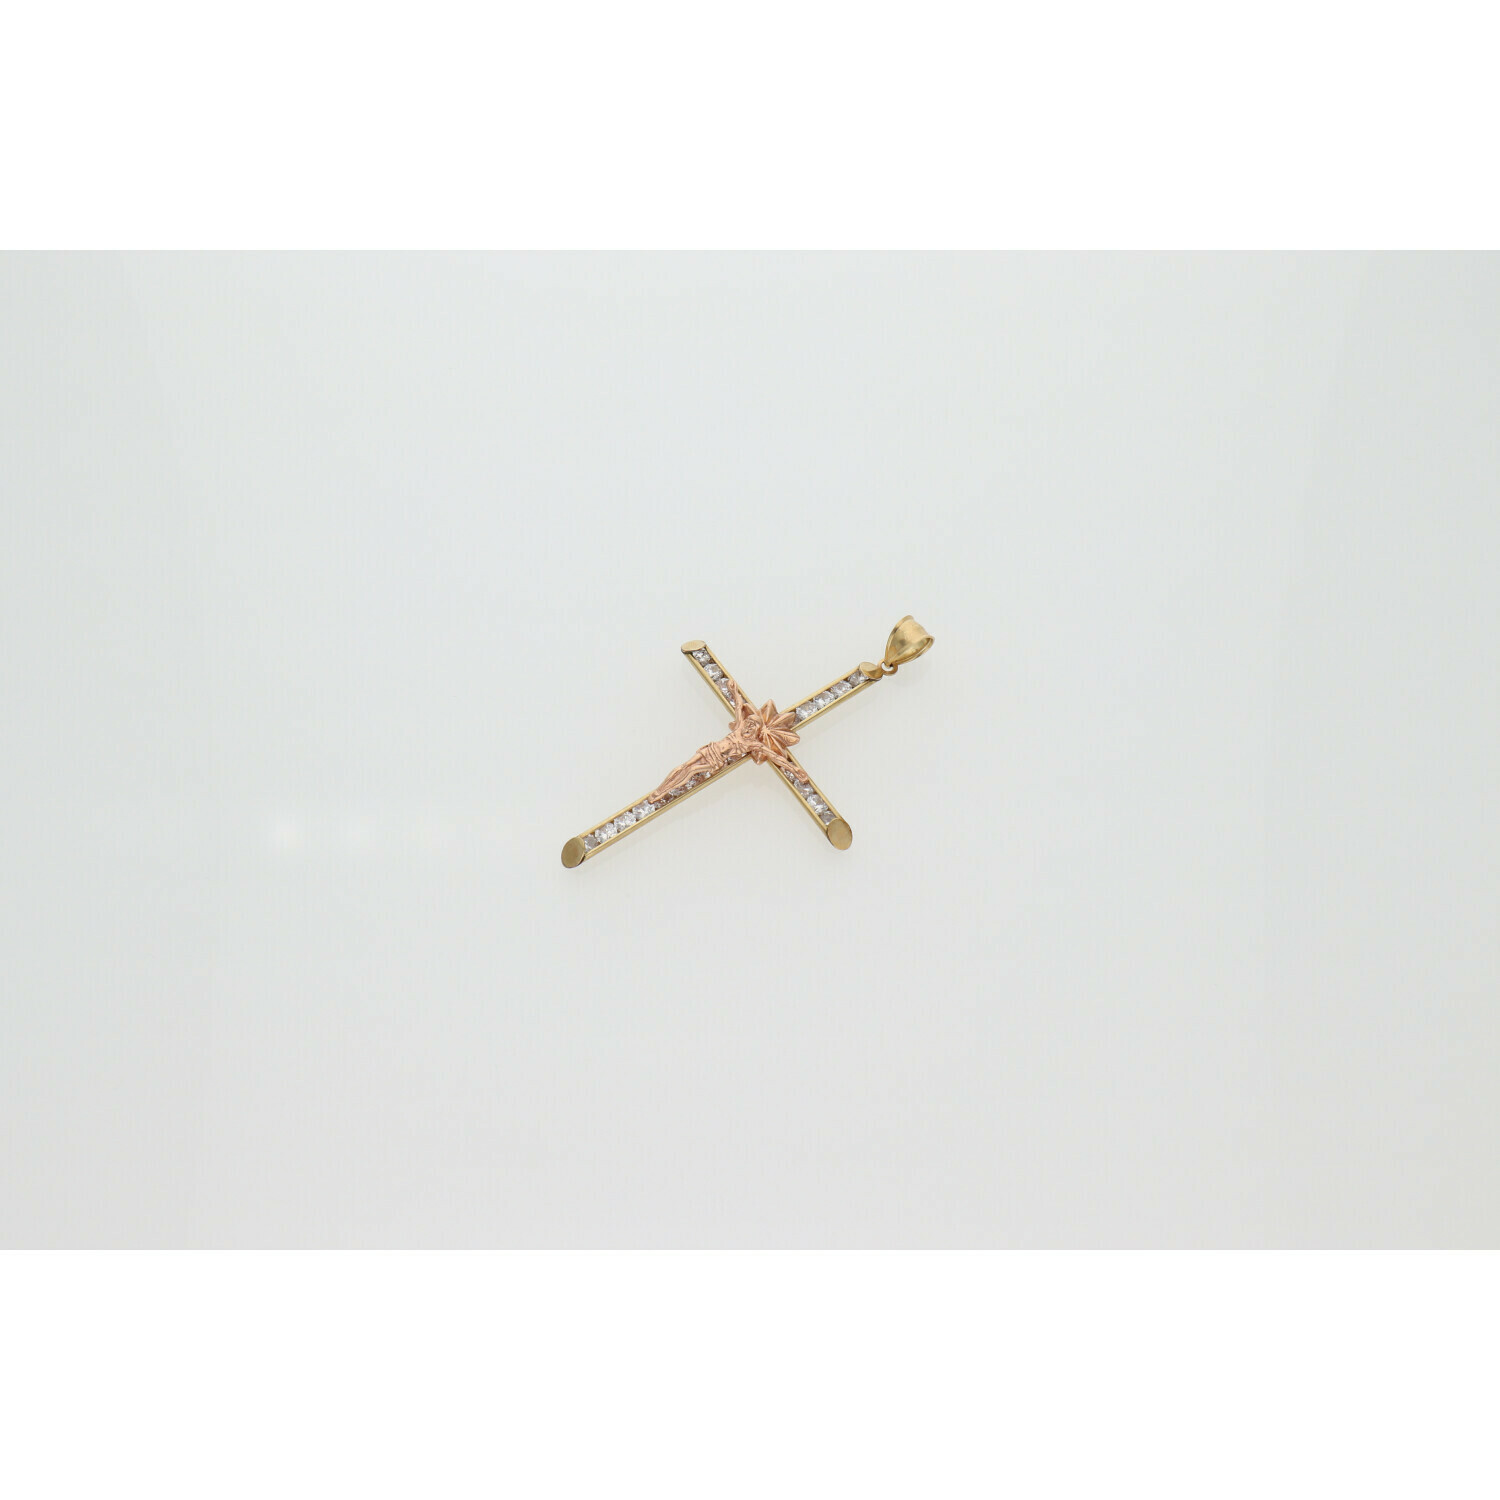 10 Karat Gold & Zirconium Two Tone Cross Jesus Cross Charm